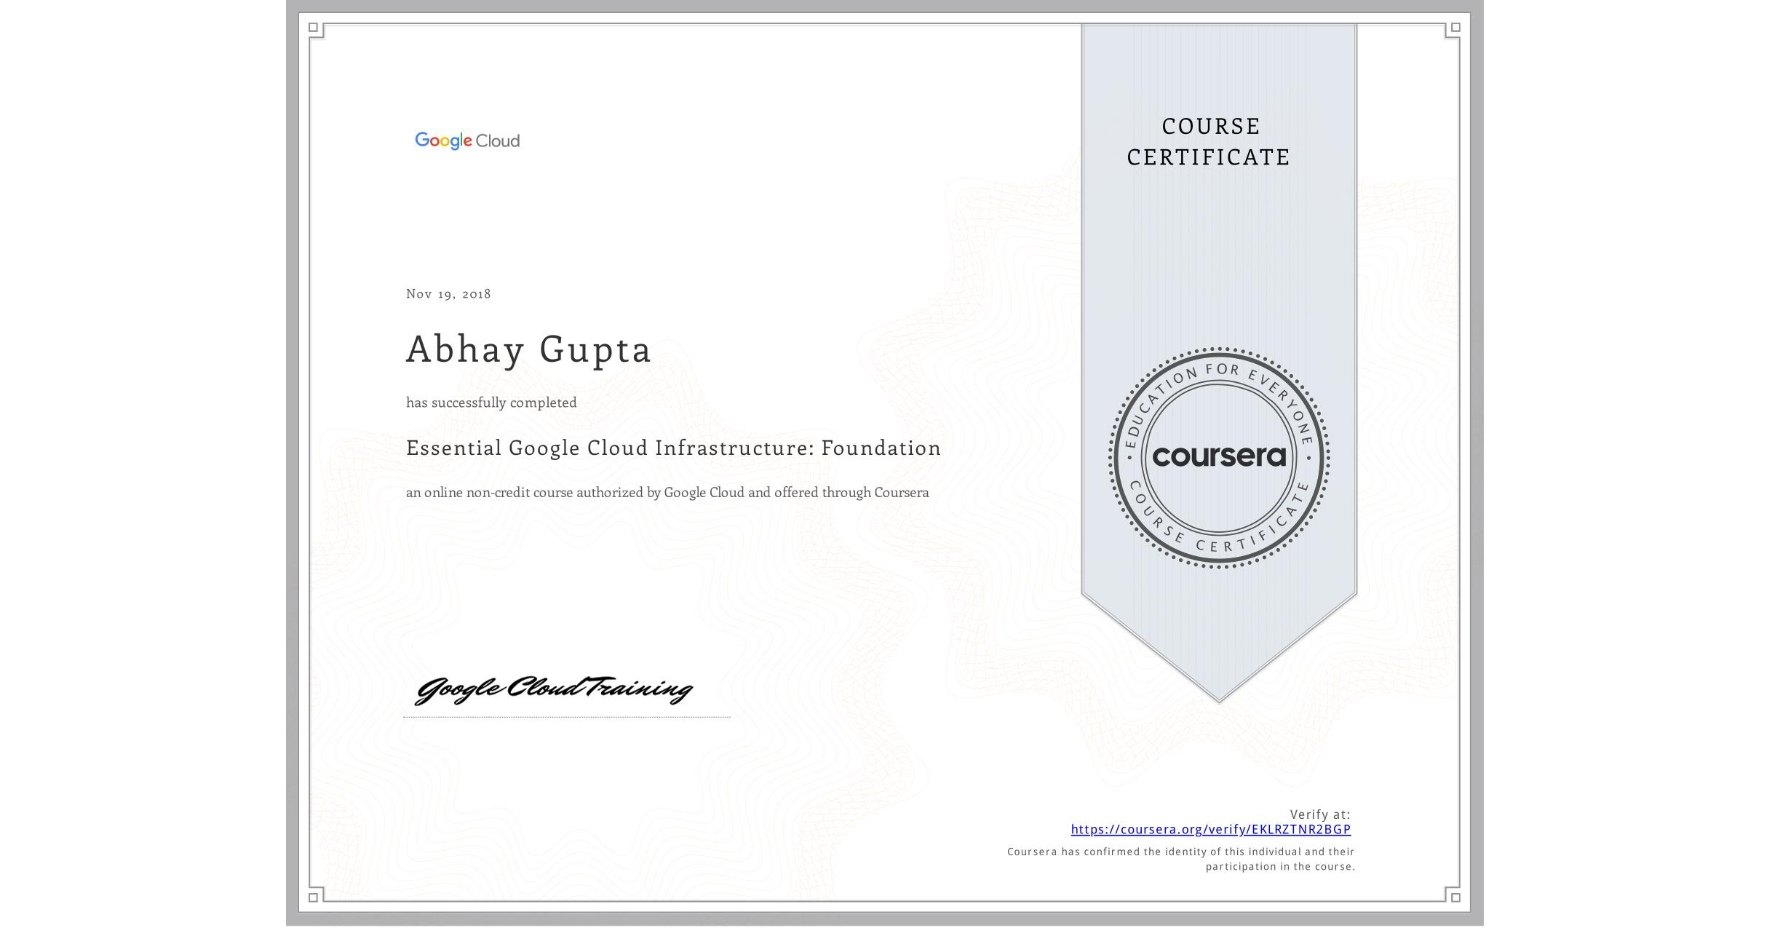 View certificate for Abhay Gupta, Essential Google Cloud Infrastructure: Foundation, an online non-credit course authorized by Google Cloud and offered through Coursera